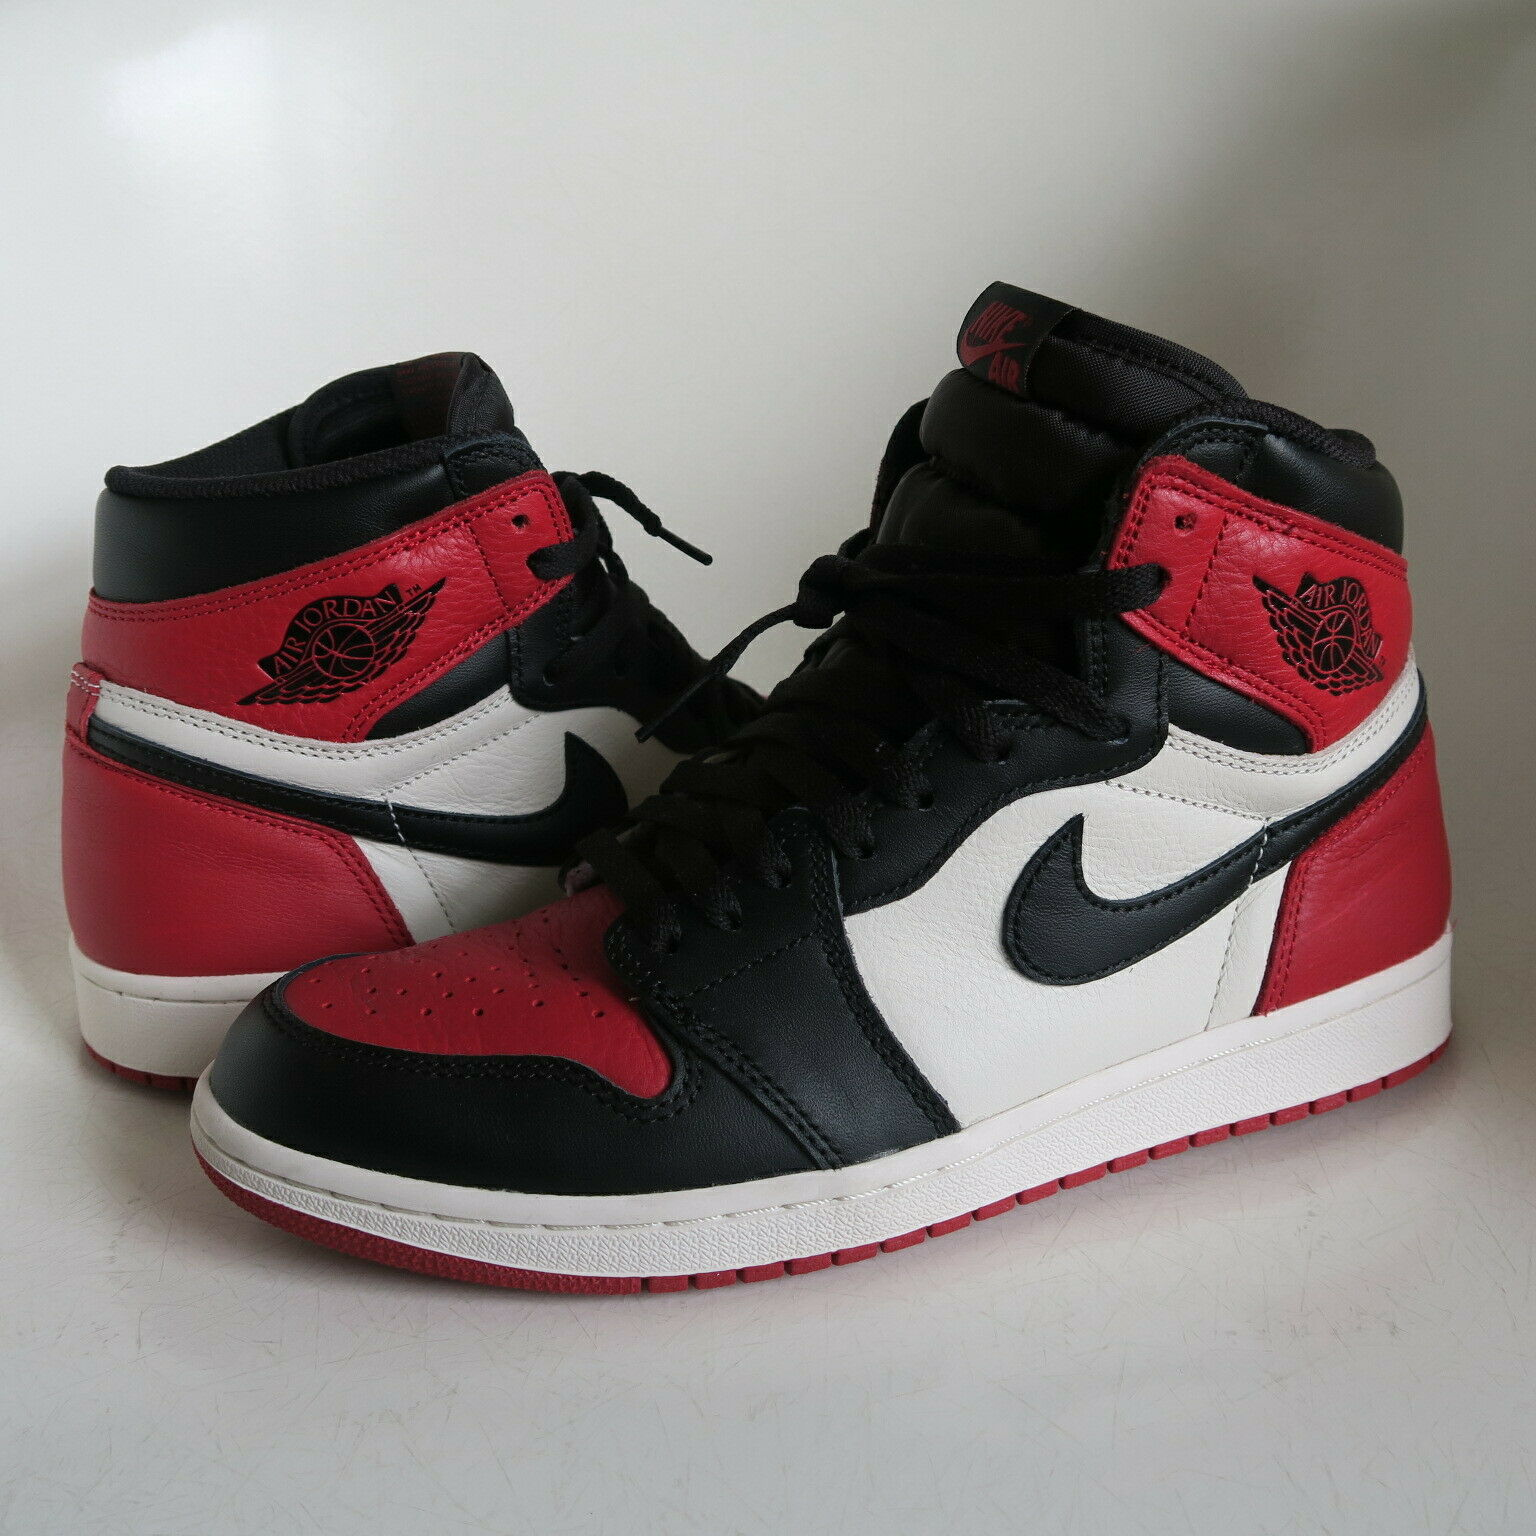 Nike AIR JORDAN I 1 RETRO HIGH OG BRED TOE US SZ. 9 Black Gym Red OFF White